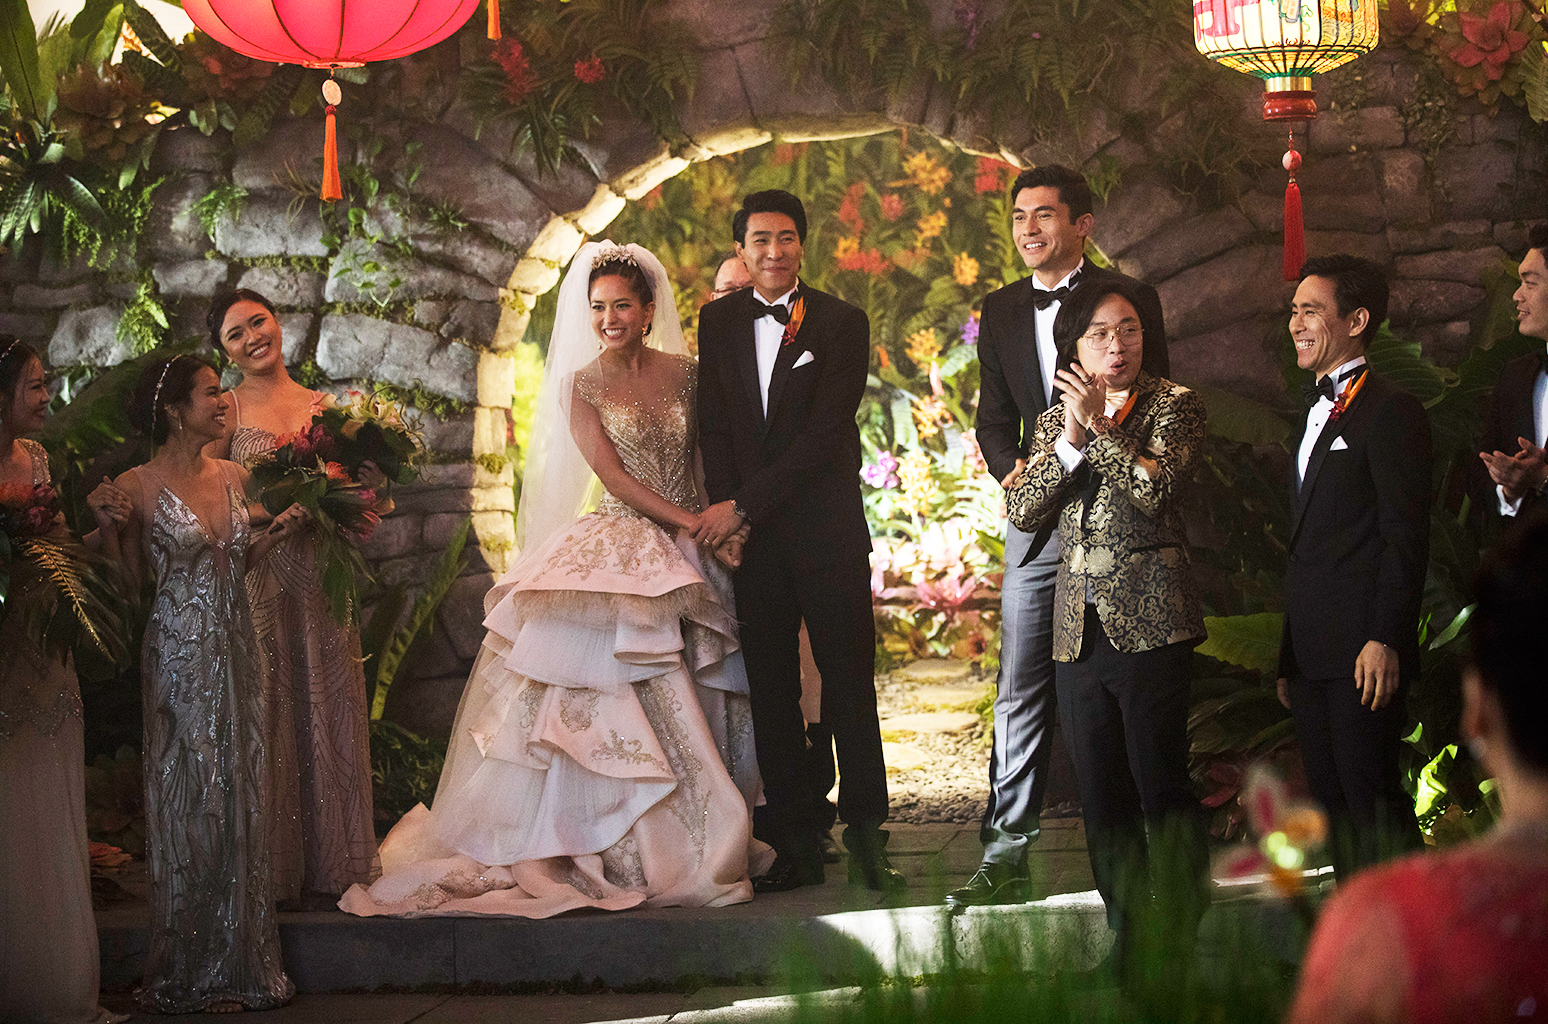 The Crazy Rich Asians Bridesmaid Dress Is Now Available